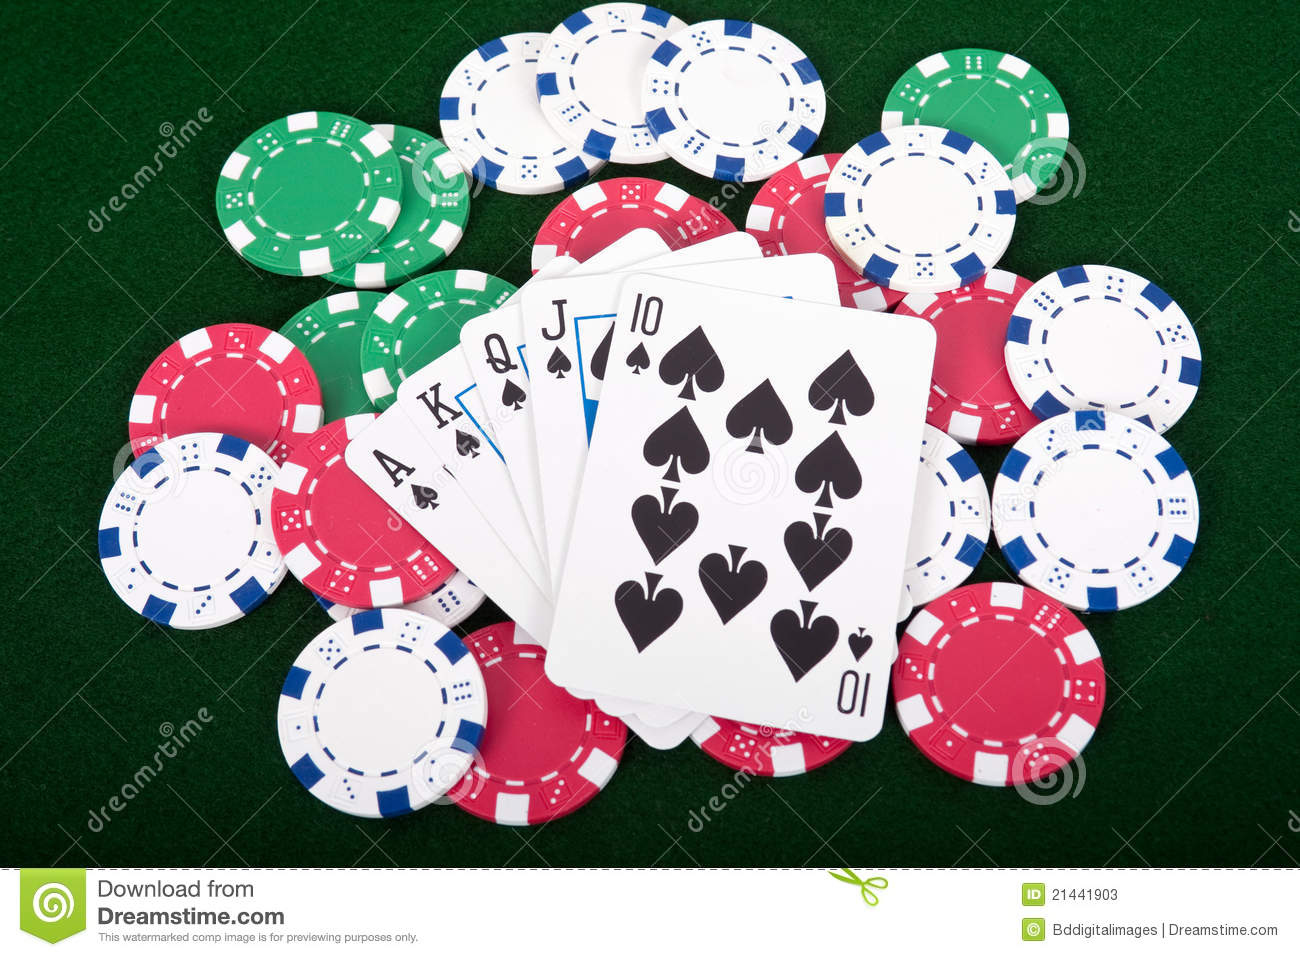 is ace high or low in poker straight